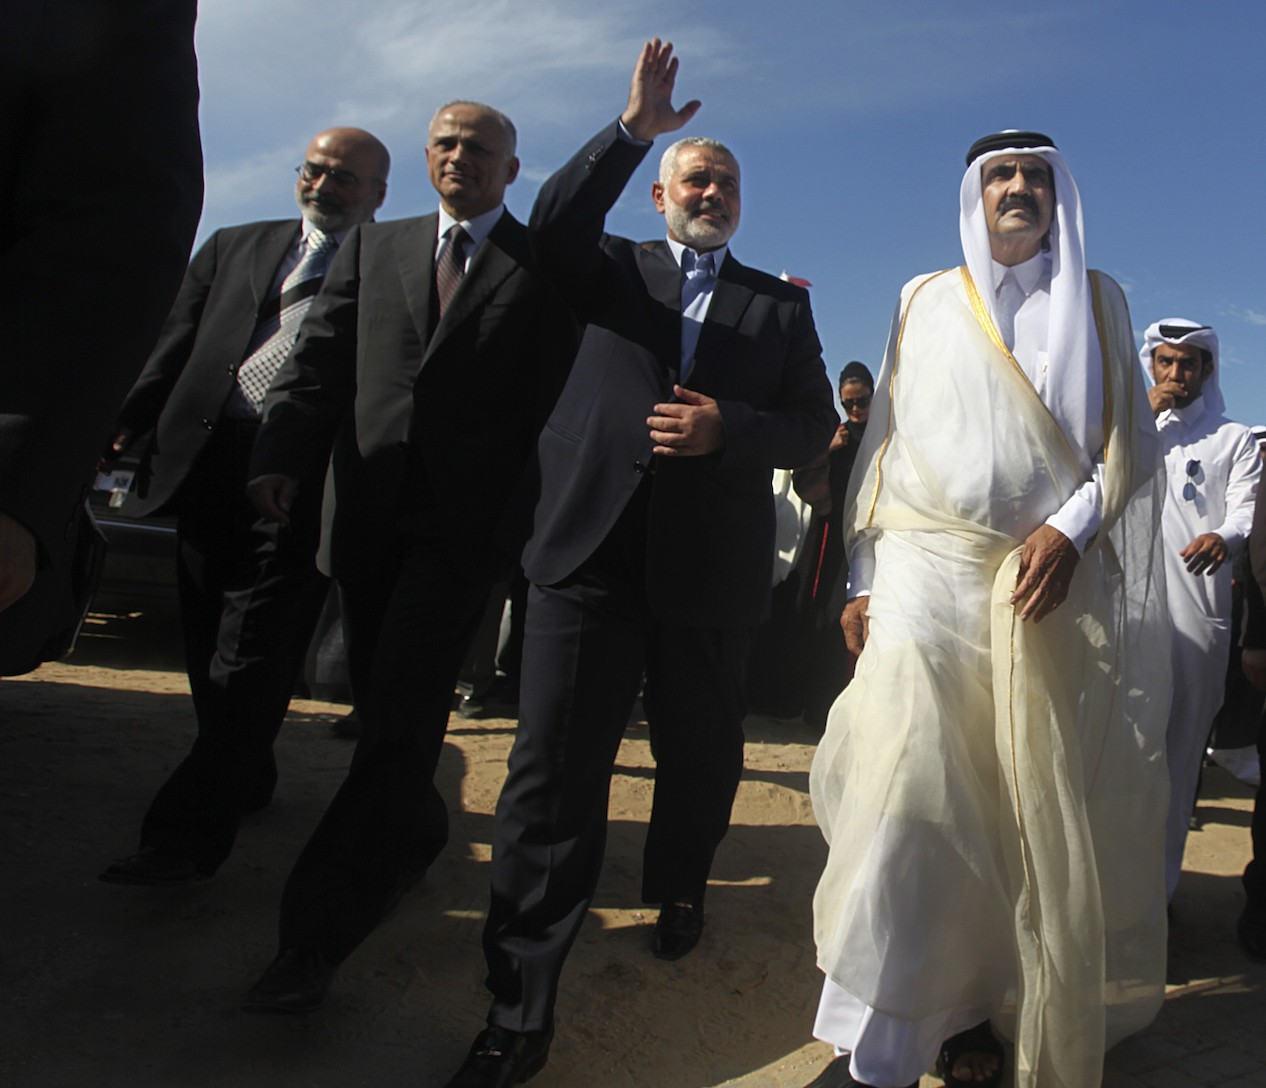 The emir of Qatar, Sheik Hamad bin Khalifa al-Thani, right, with Hamas Prime Minister Ismail Haniyeh, second from right, during an official visit to the Gaza Strip, Oct. 23, 2012. (Mohammed Salem-Pool/Getty Images)